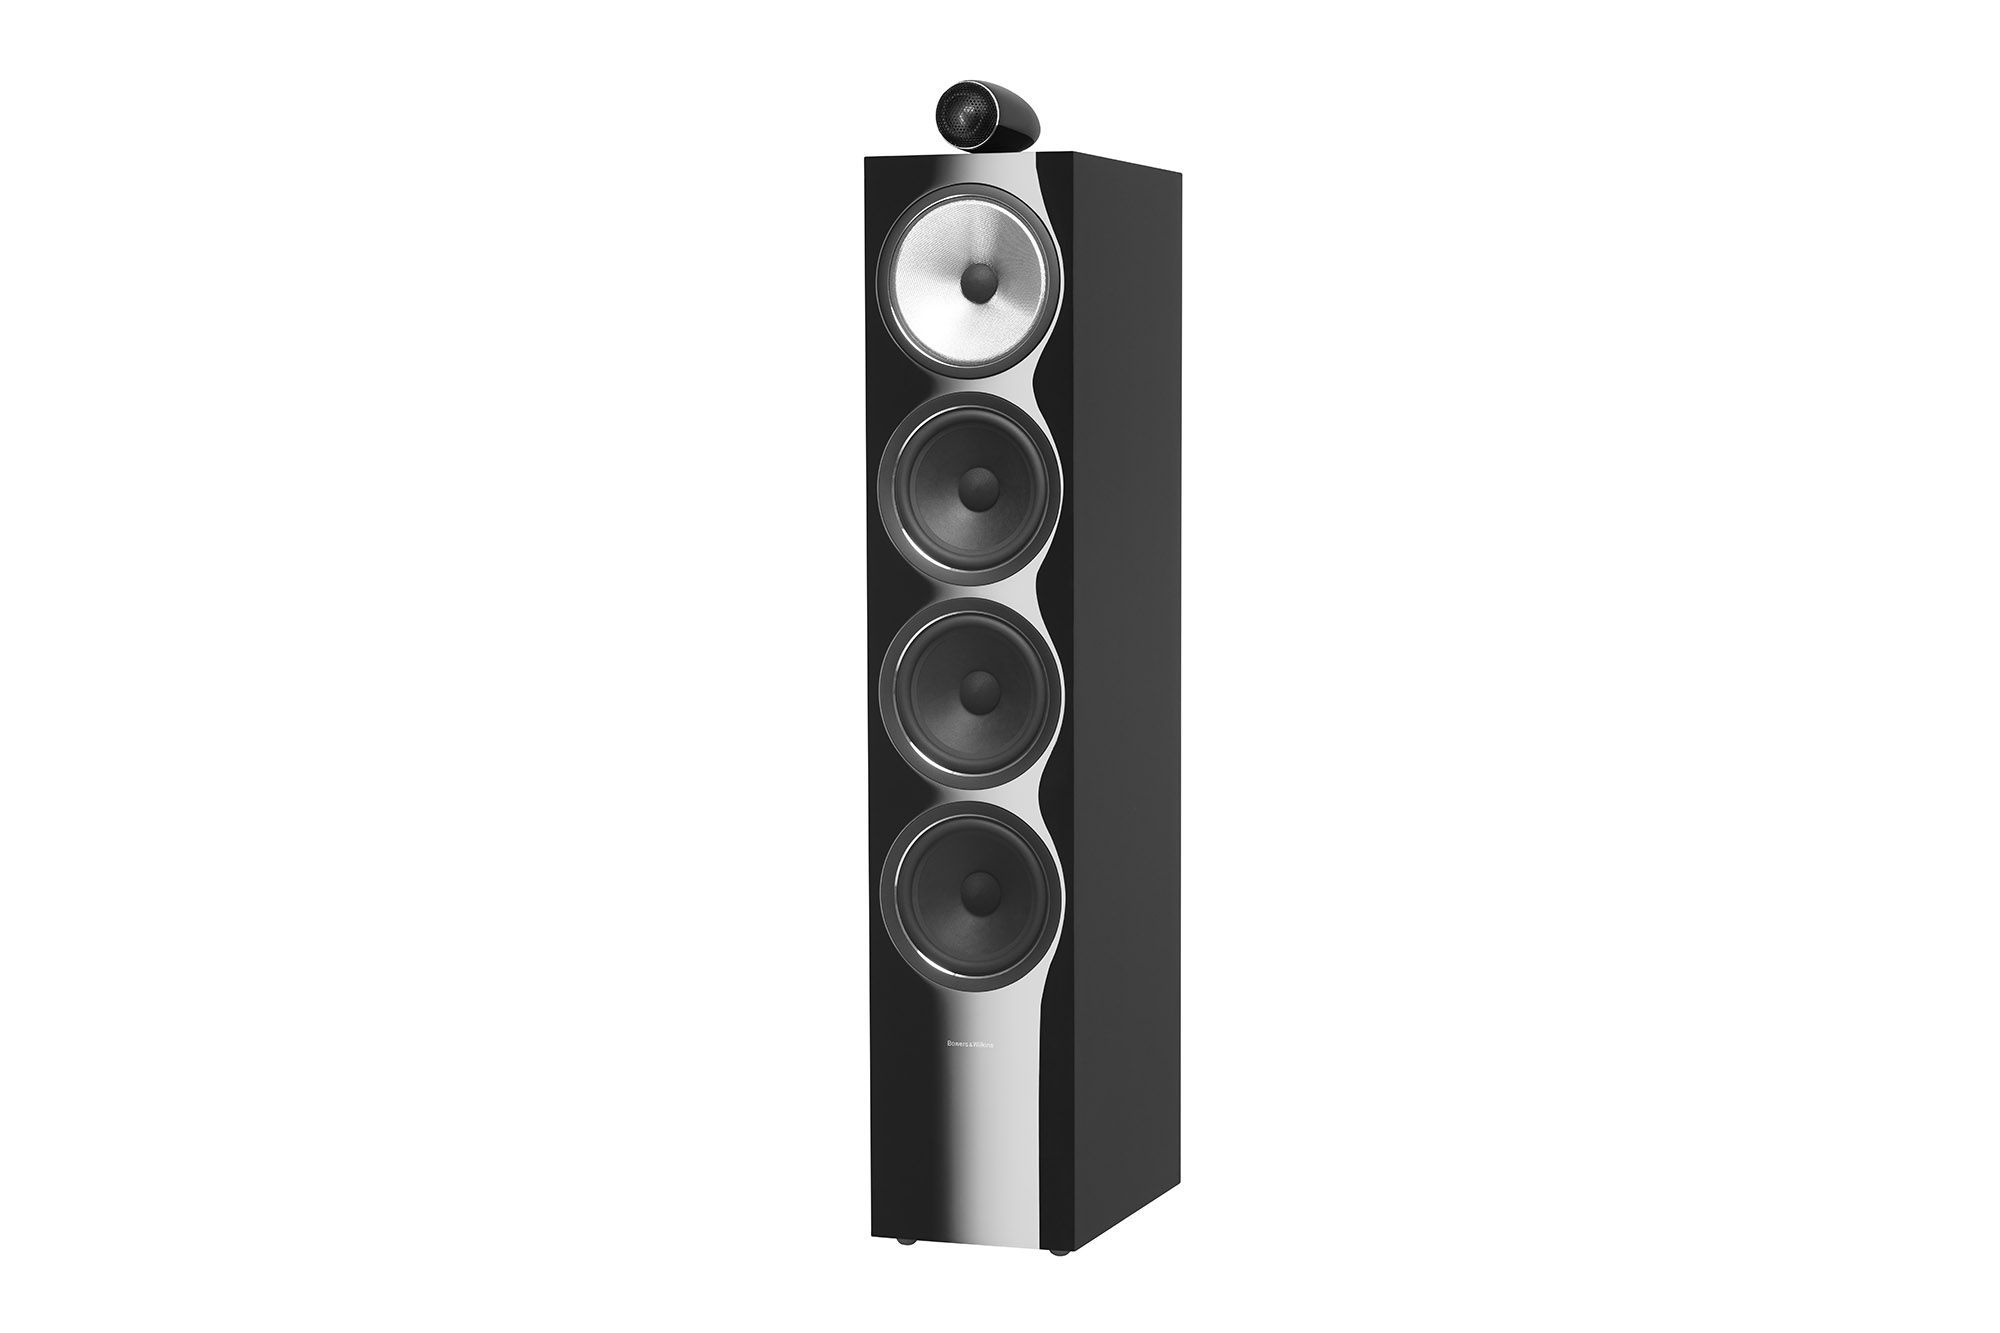 702 S2 Gloss Black Grille Off Latest Bowers & Wilkins Speakers Combine New Technology With Classic Design